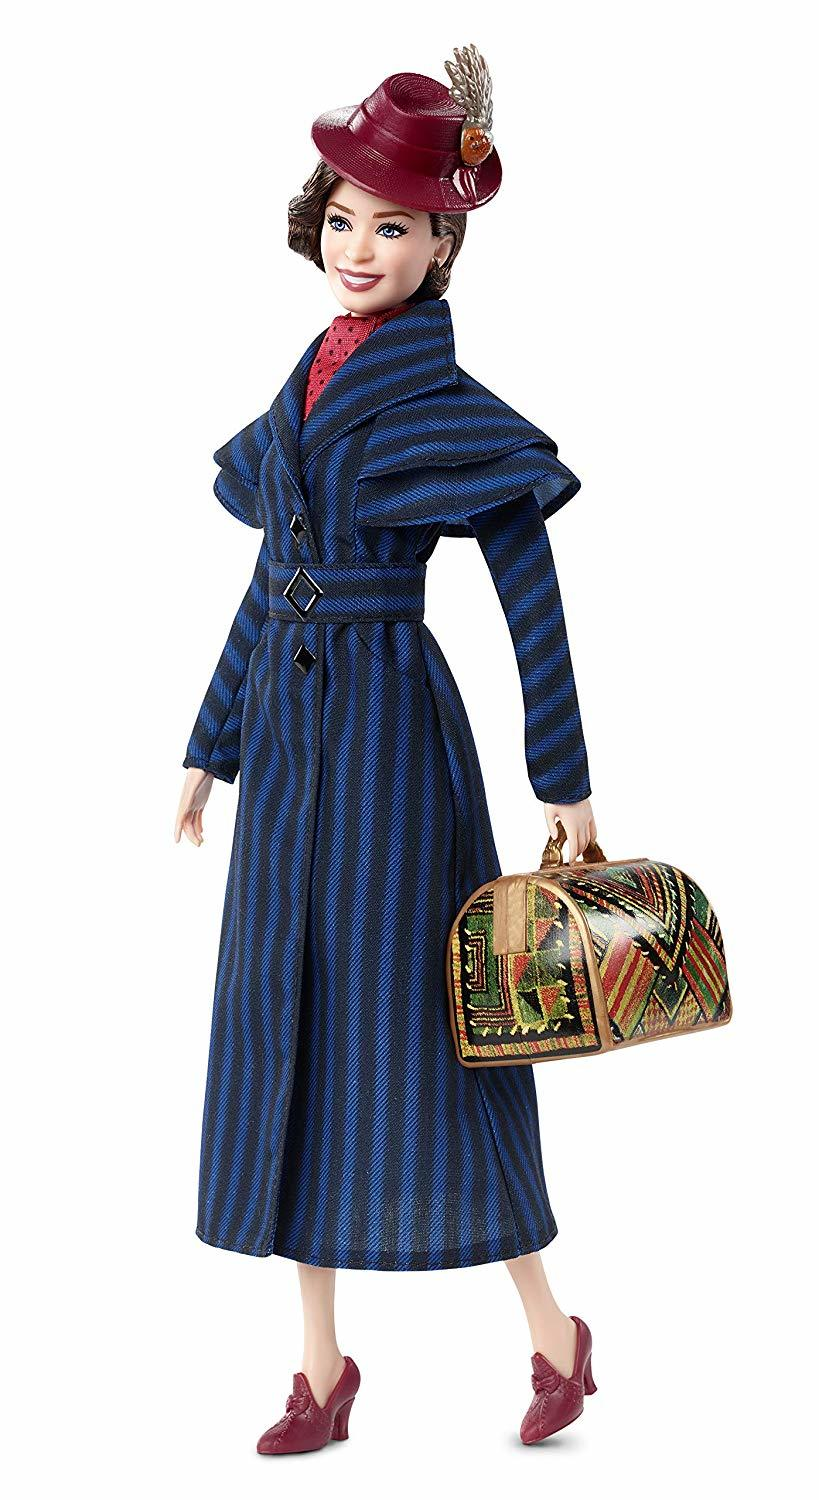 Barbie: Mary Poppins Returns - Mary Poppins Doll image